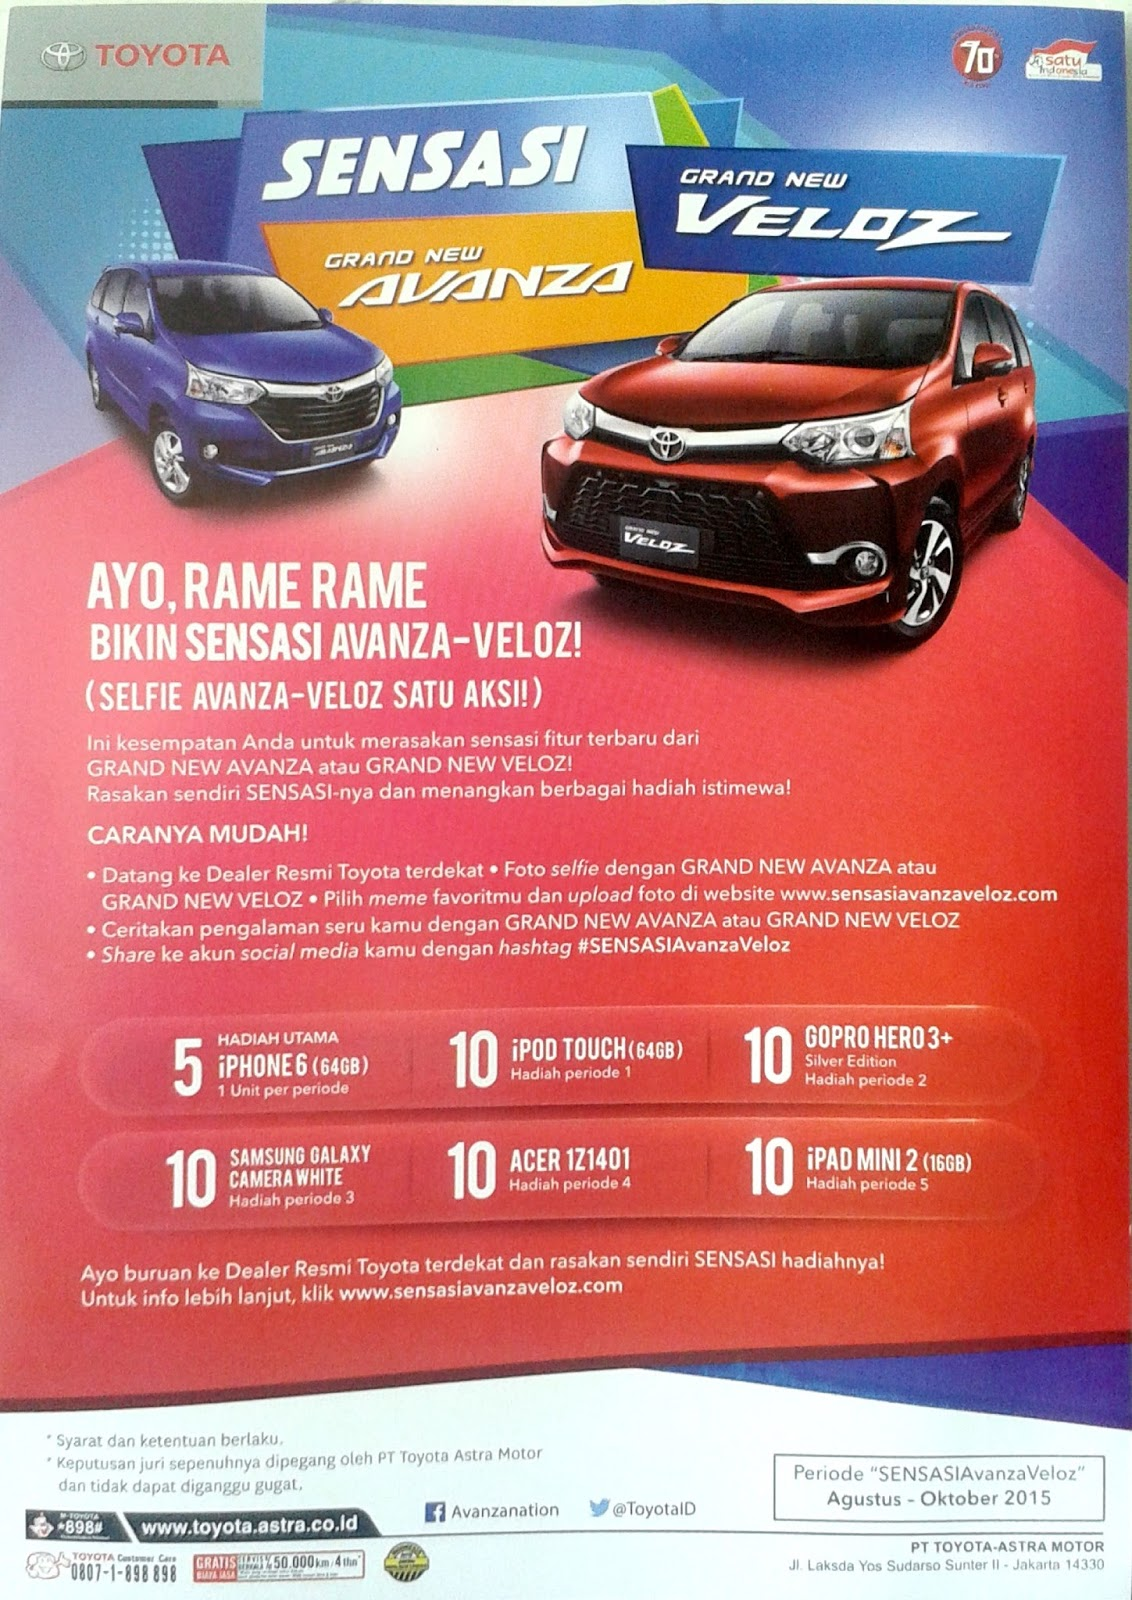 grand new veloz auto 2000 all kijang innova 2.0 v m/t sensasi avanza and harga toyota